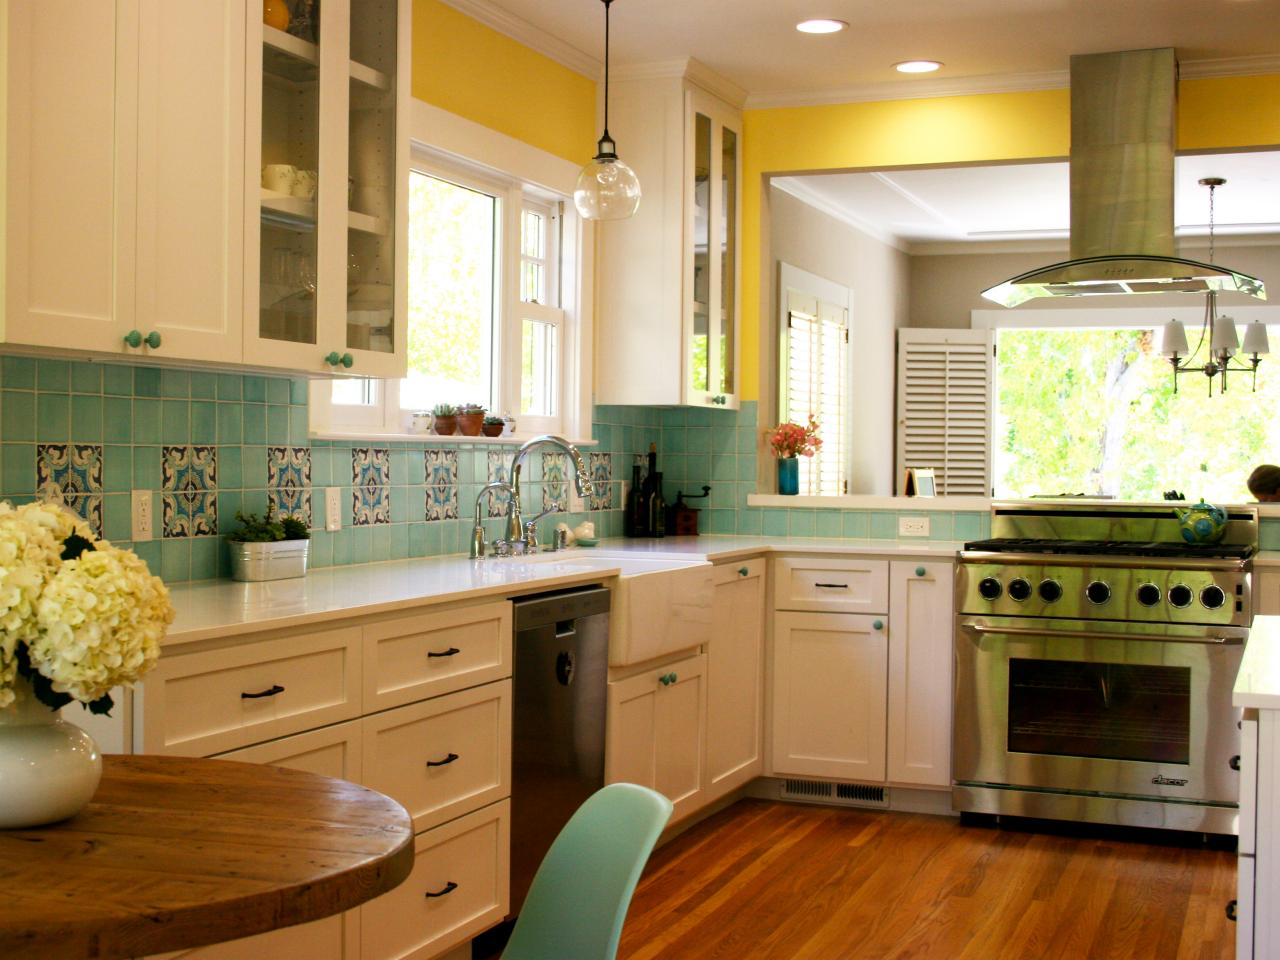 Yellow kitchen photos hgtv for Hgtv kitchens